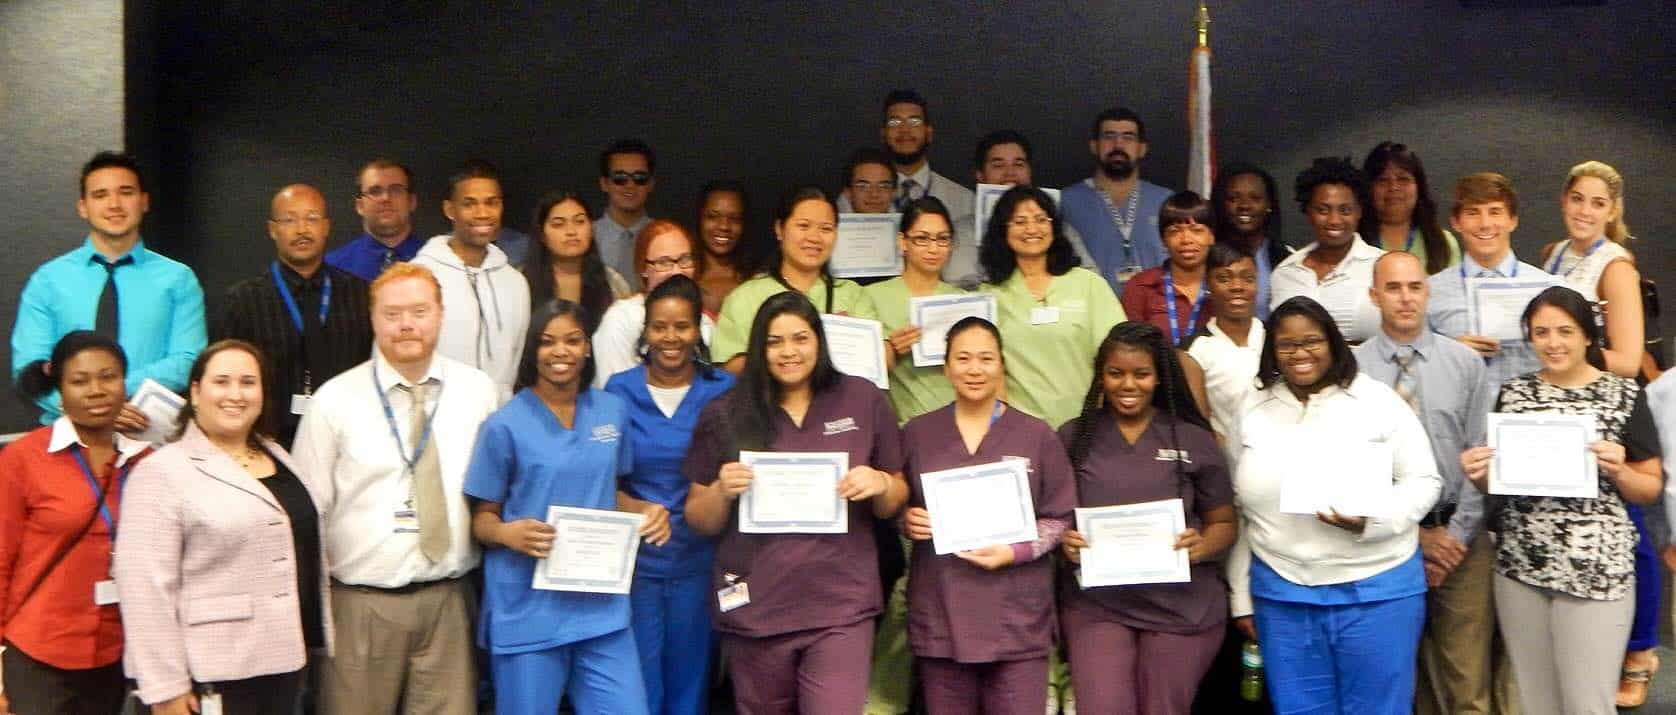 Keiser Students Awarded for Academic Success at Pembroke Pines Campus